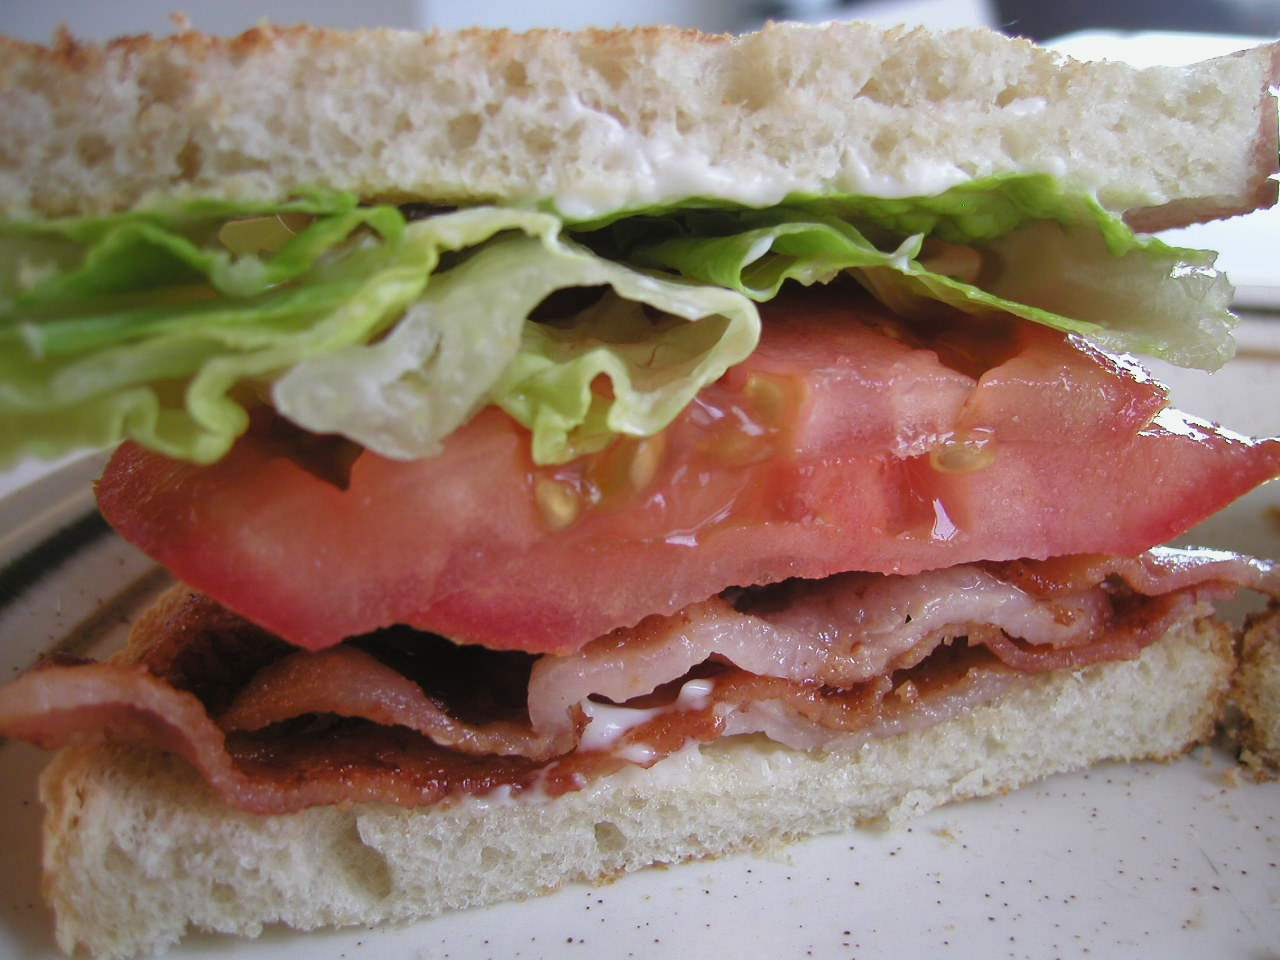 BLT Cross-Section